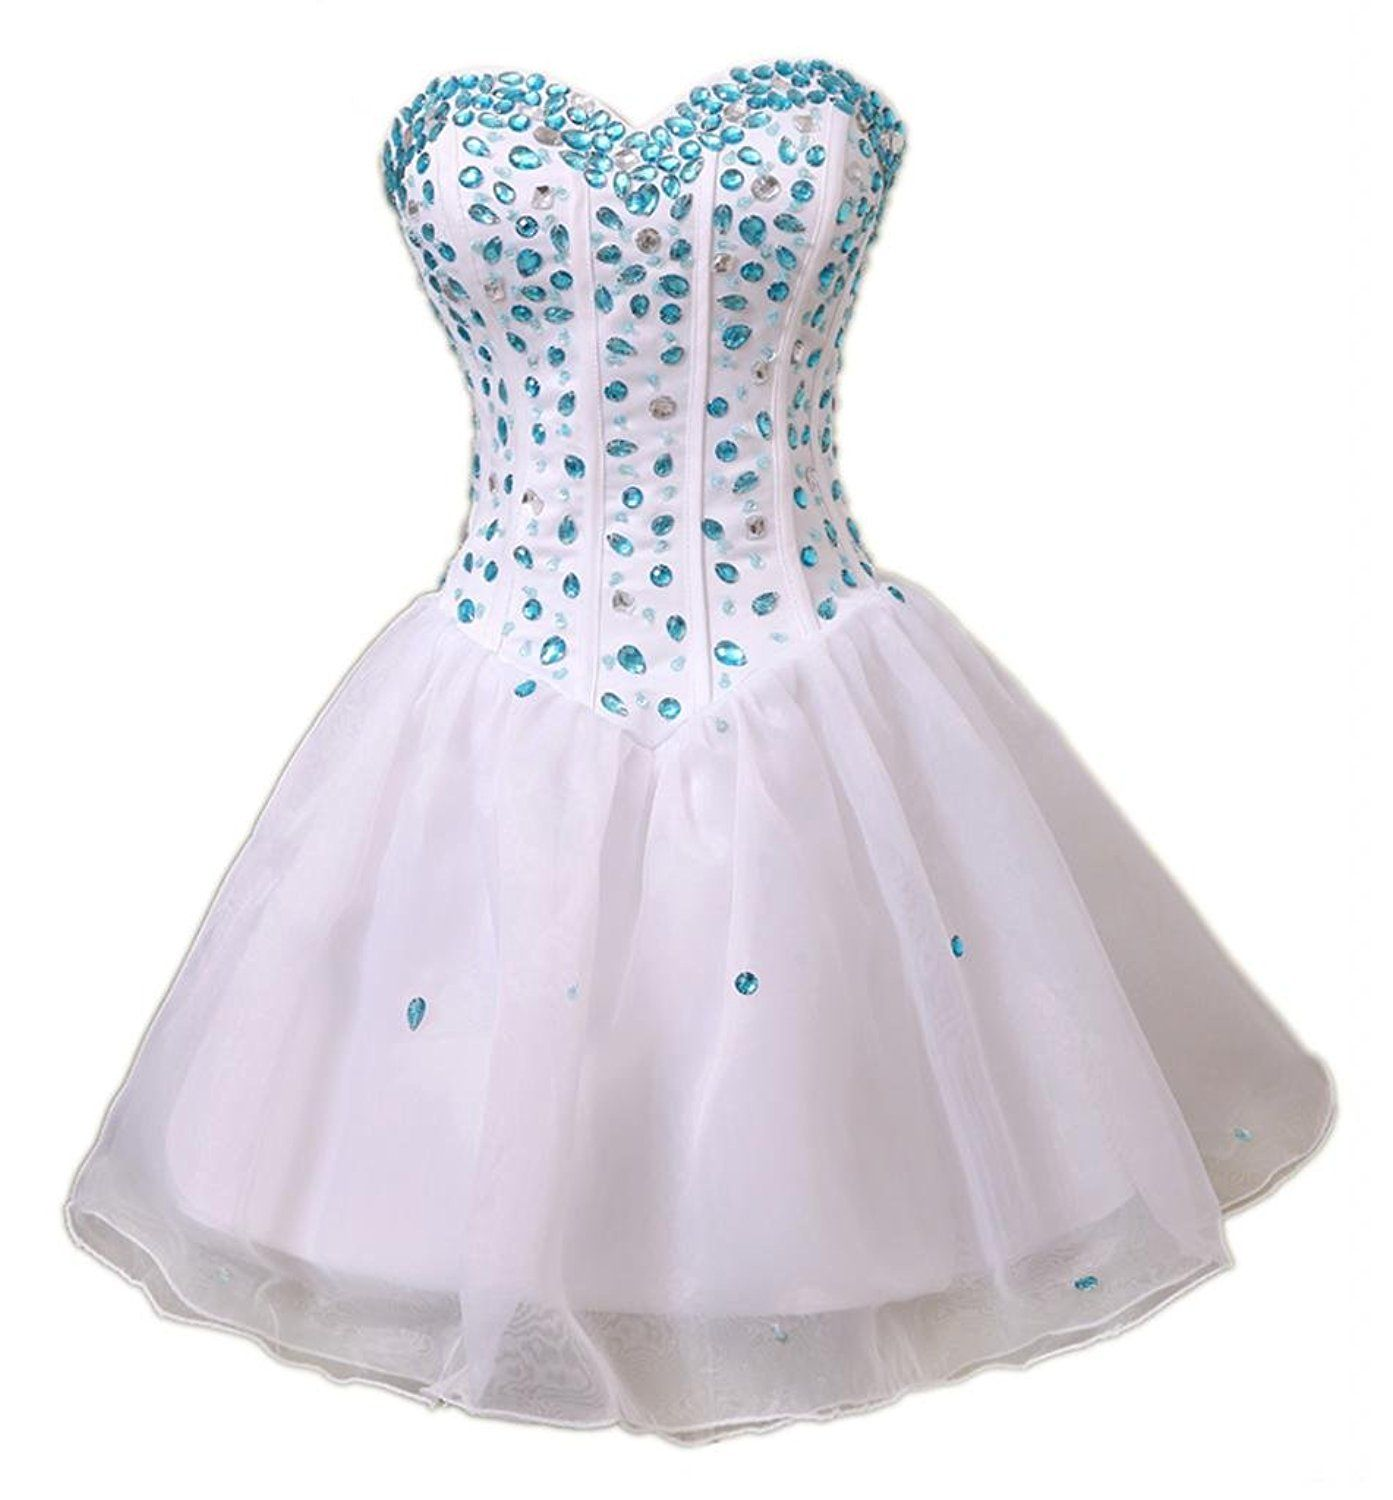 Albrose short mini womens prom dresses find out more details by